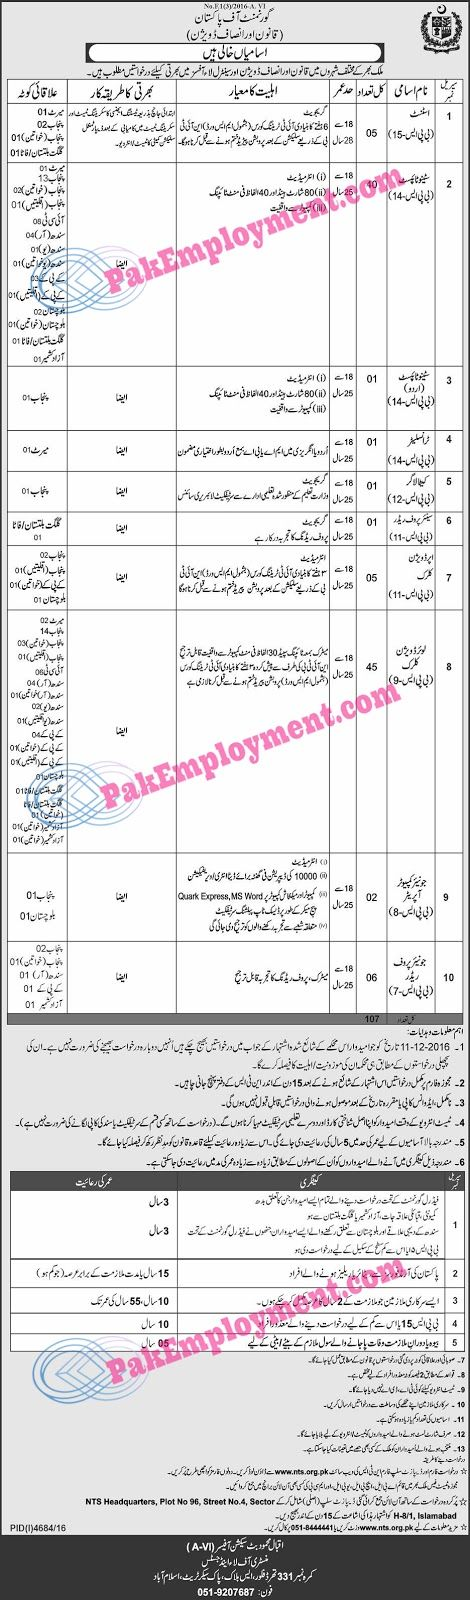 Title Of   Job          Detail of   Job              Name Of Job          Department of Law & Justice   Pakistan       ...